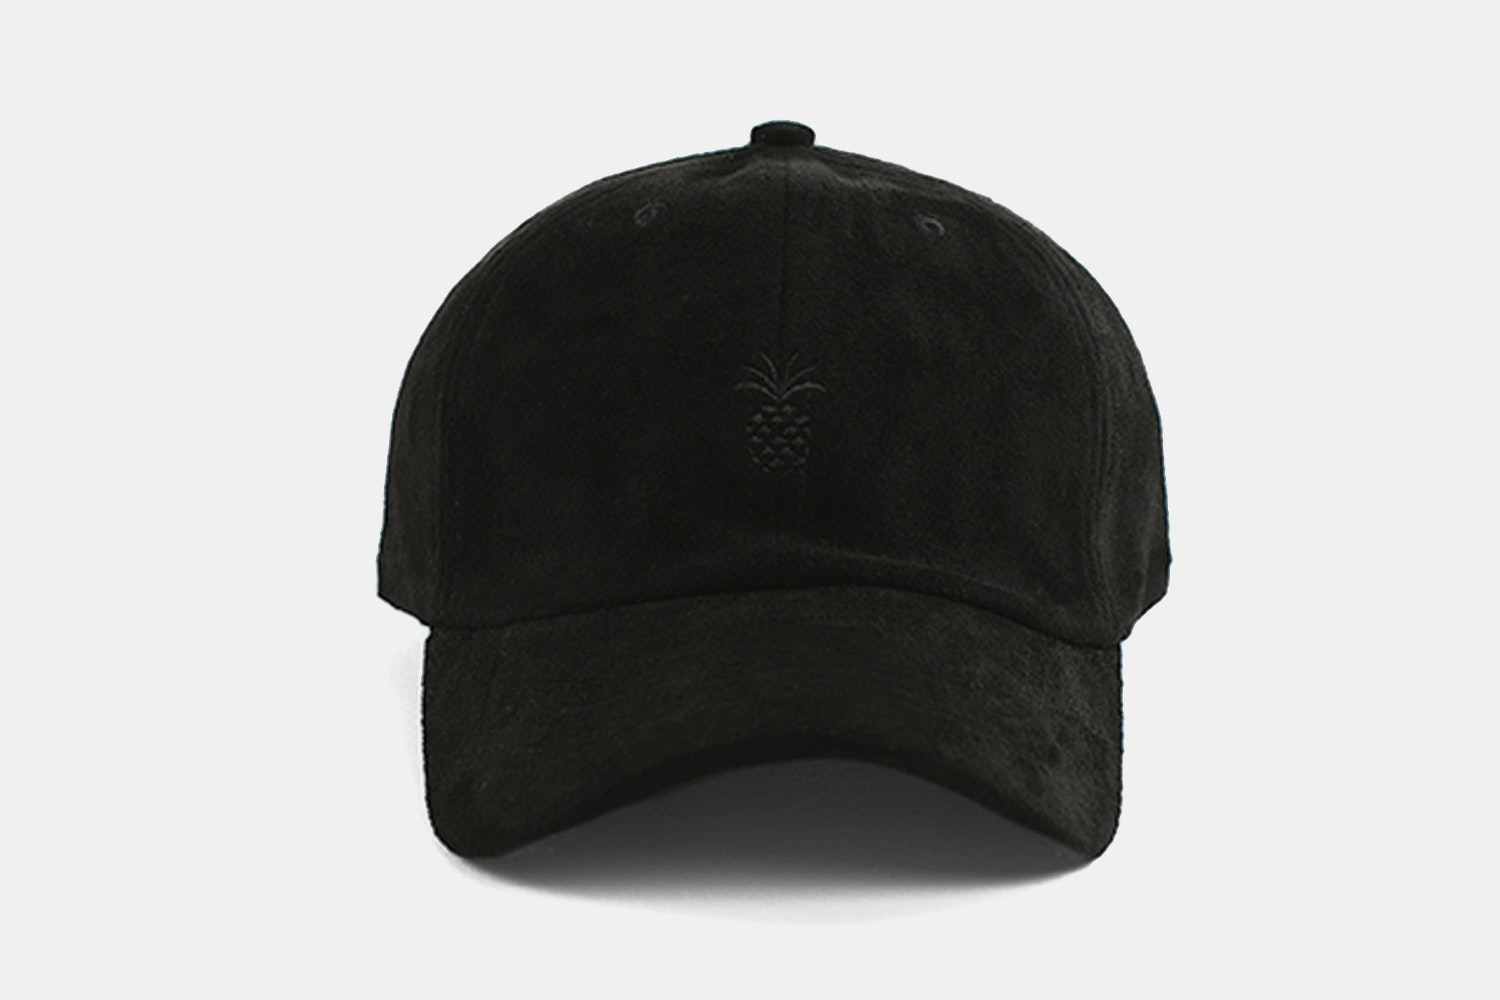 Pineapple Suede Dad Hat - All Black